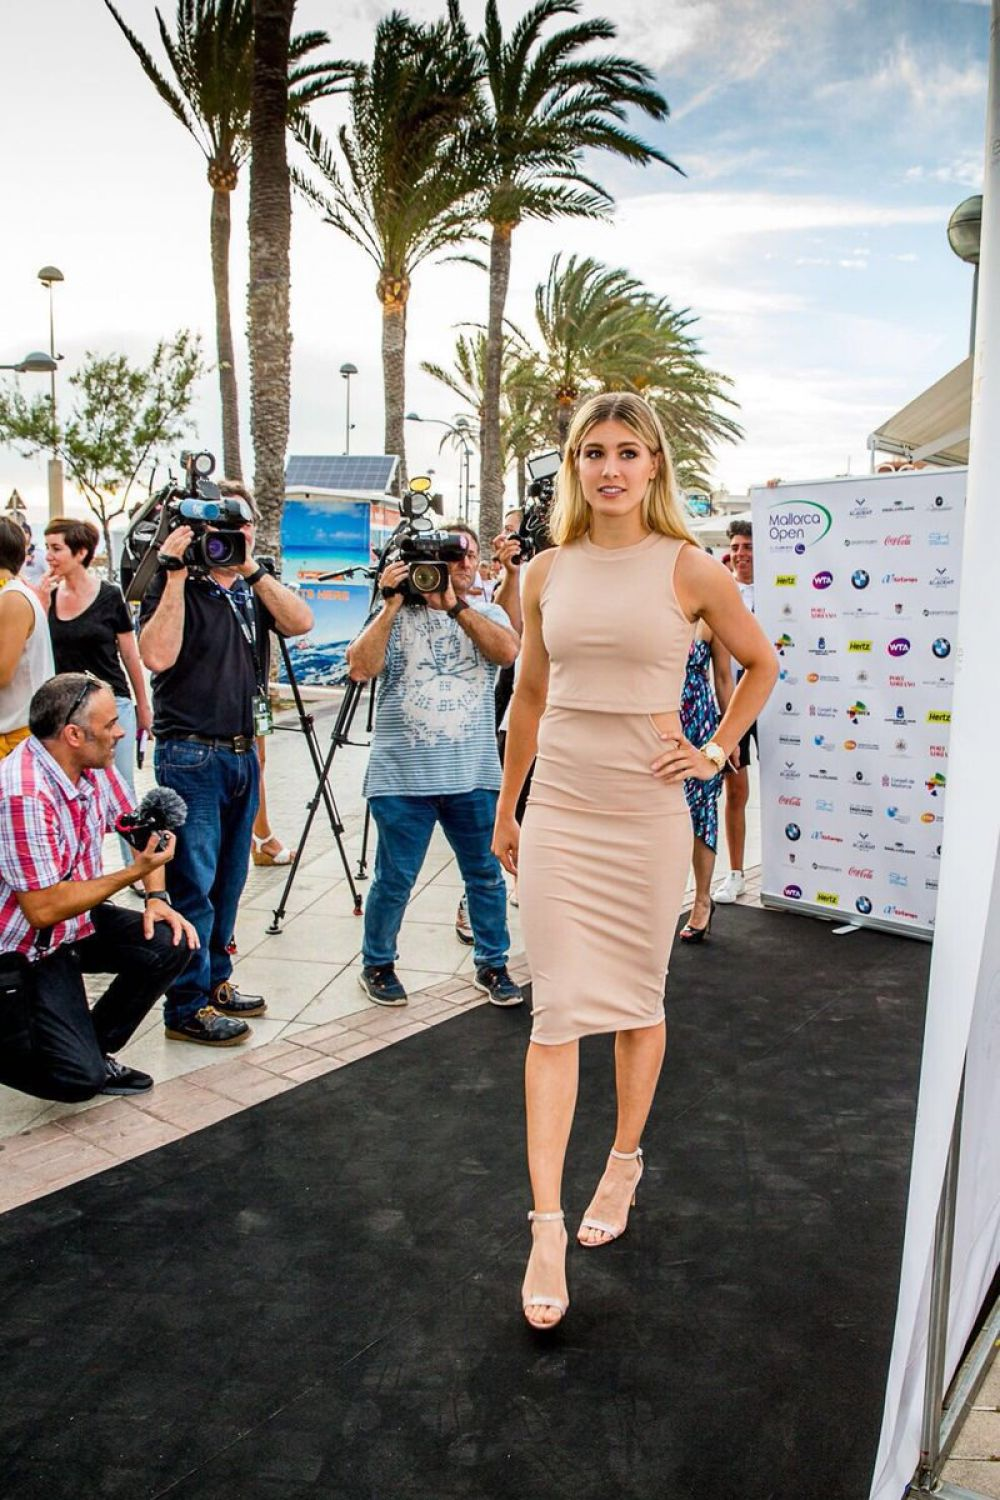 Eugenie Bouchard At Mallorca Open Tennis Opening Party In Palma De Mallorca